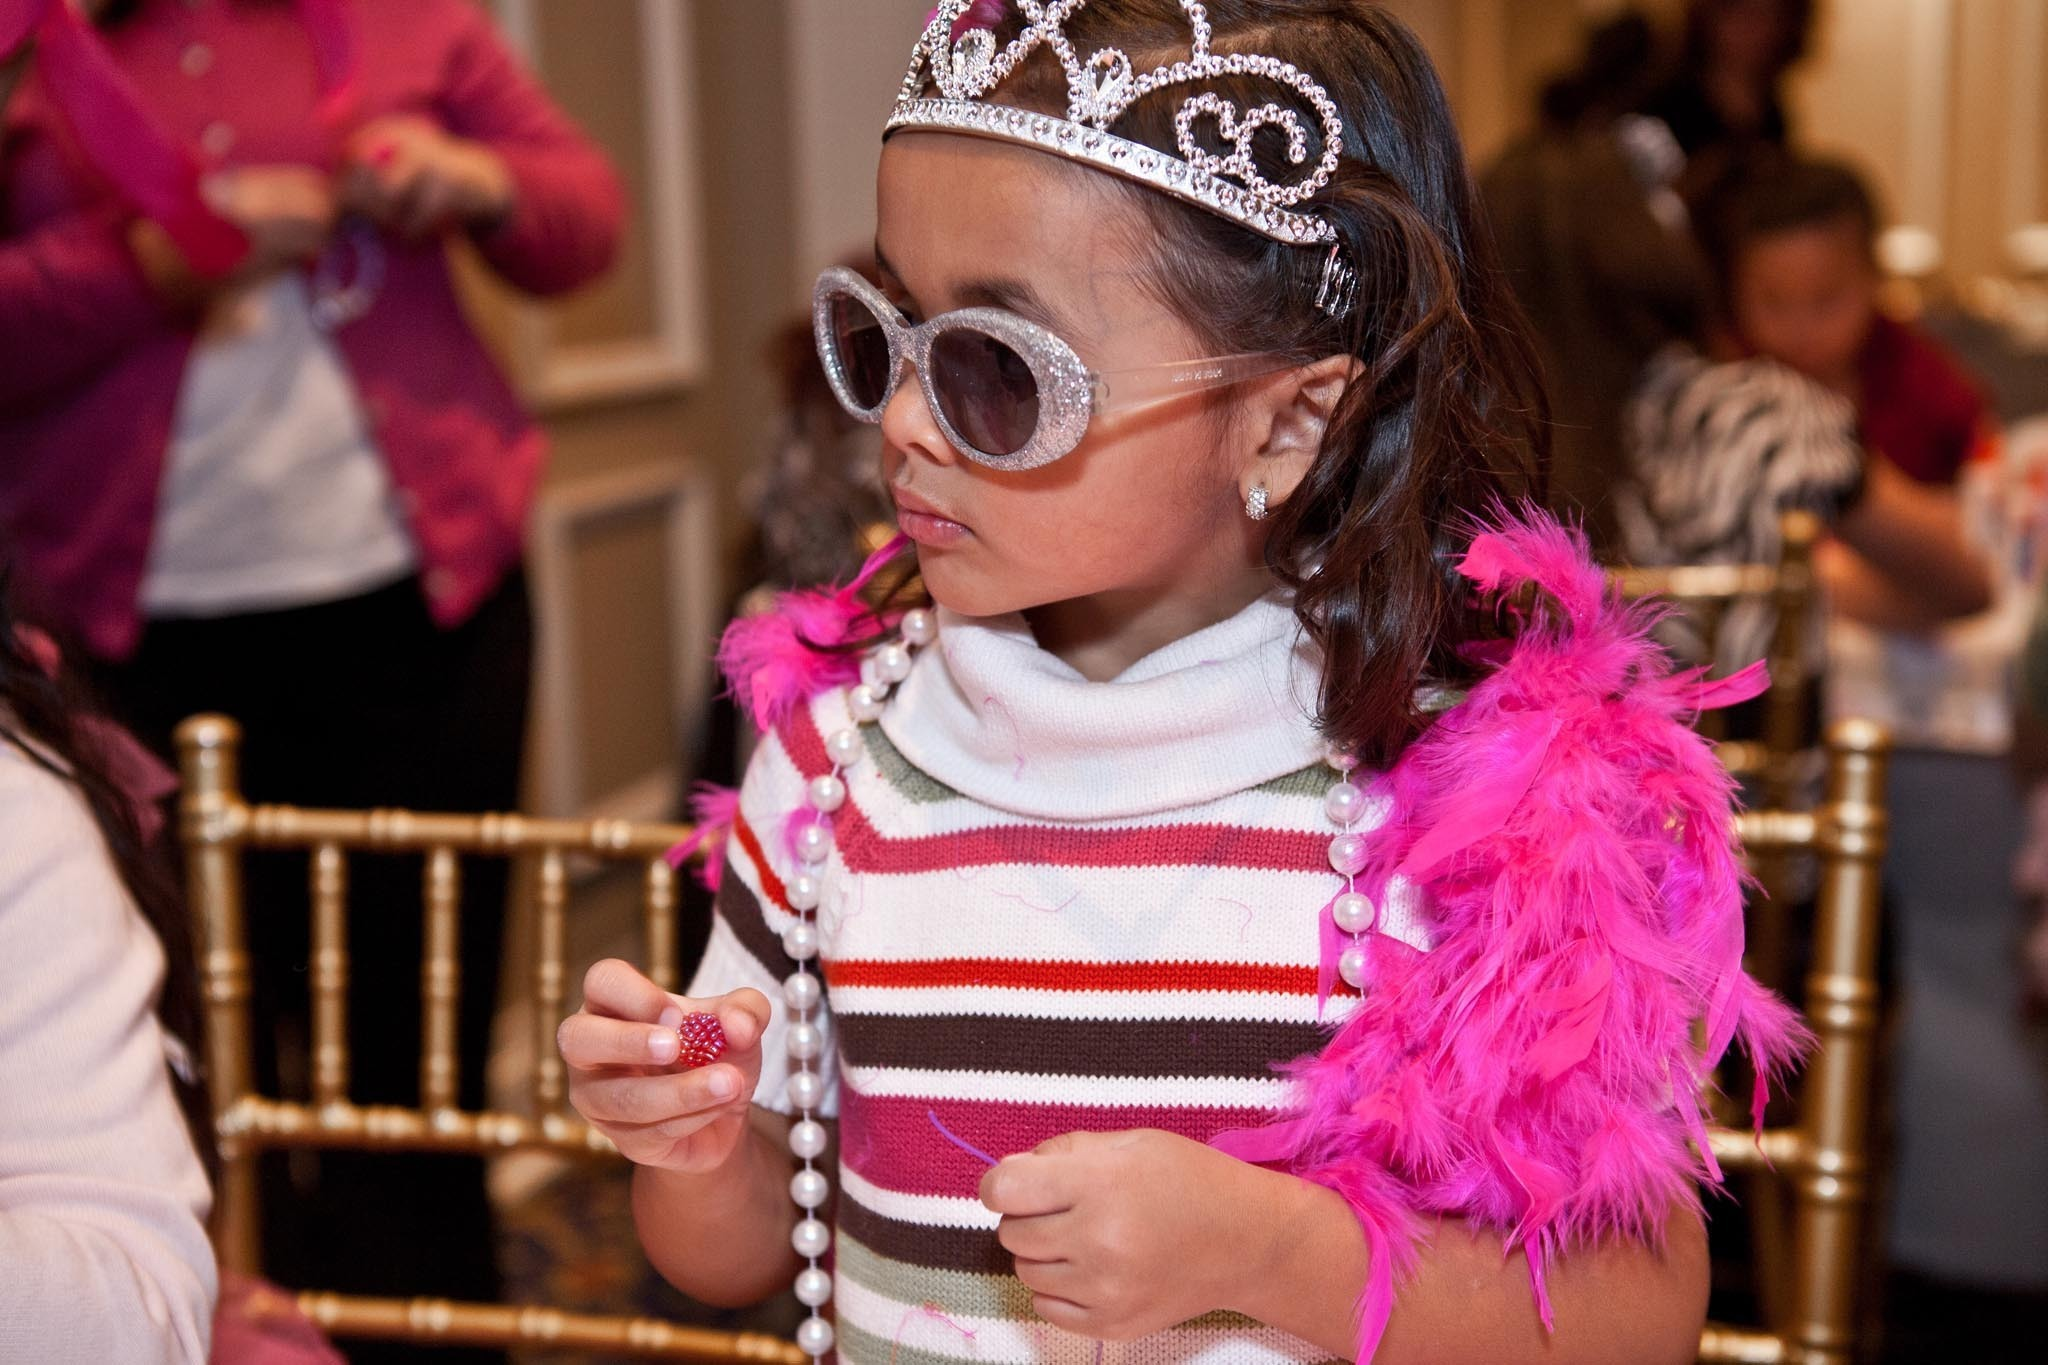 Eloise Summer Events at The Plaza Hotel